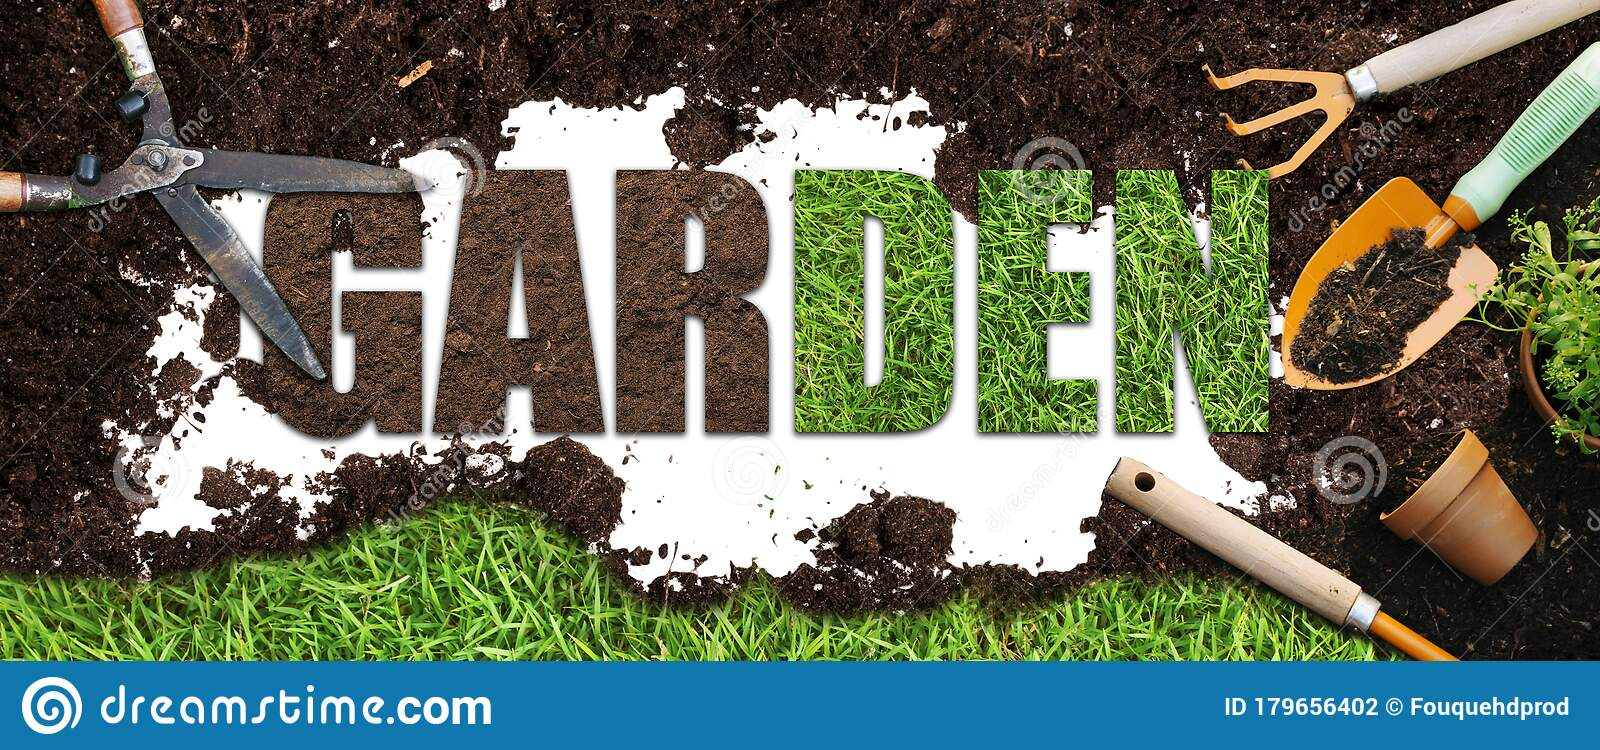 Garden Banner Illustration Garden Tools On Brown Soil And Gardening Word Text Stock Photo Image Of Gloves Background 179656402